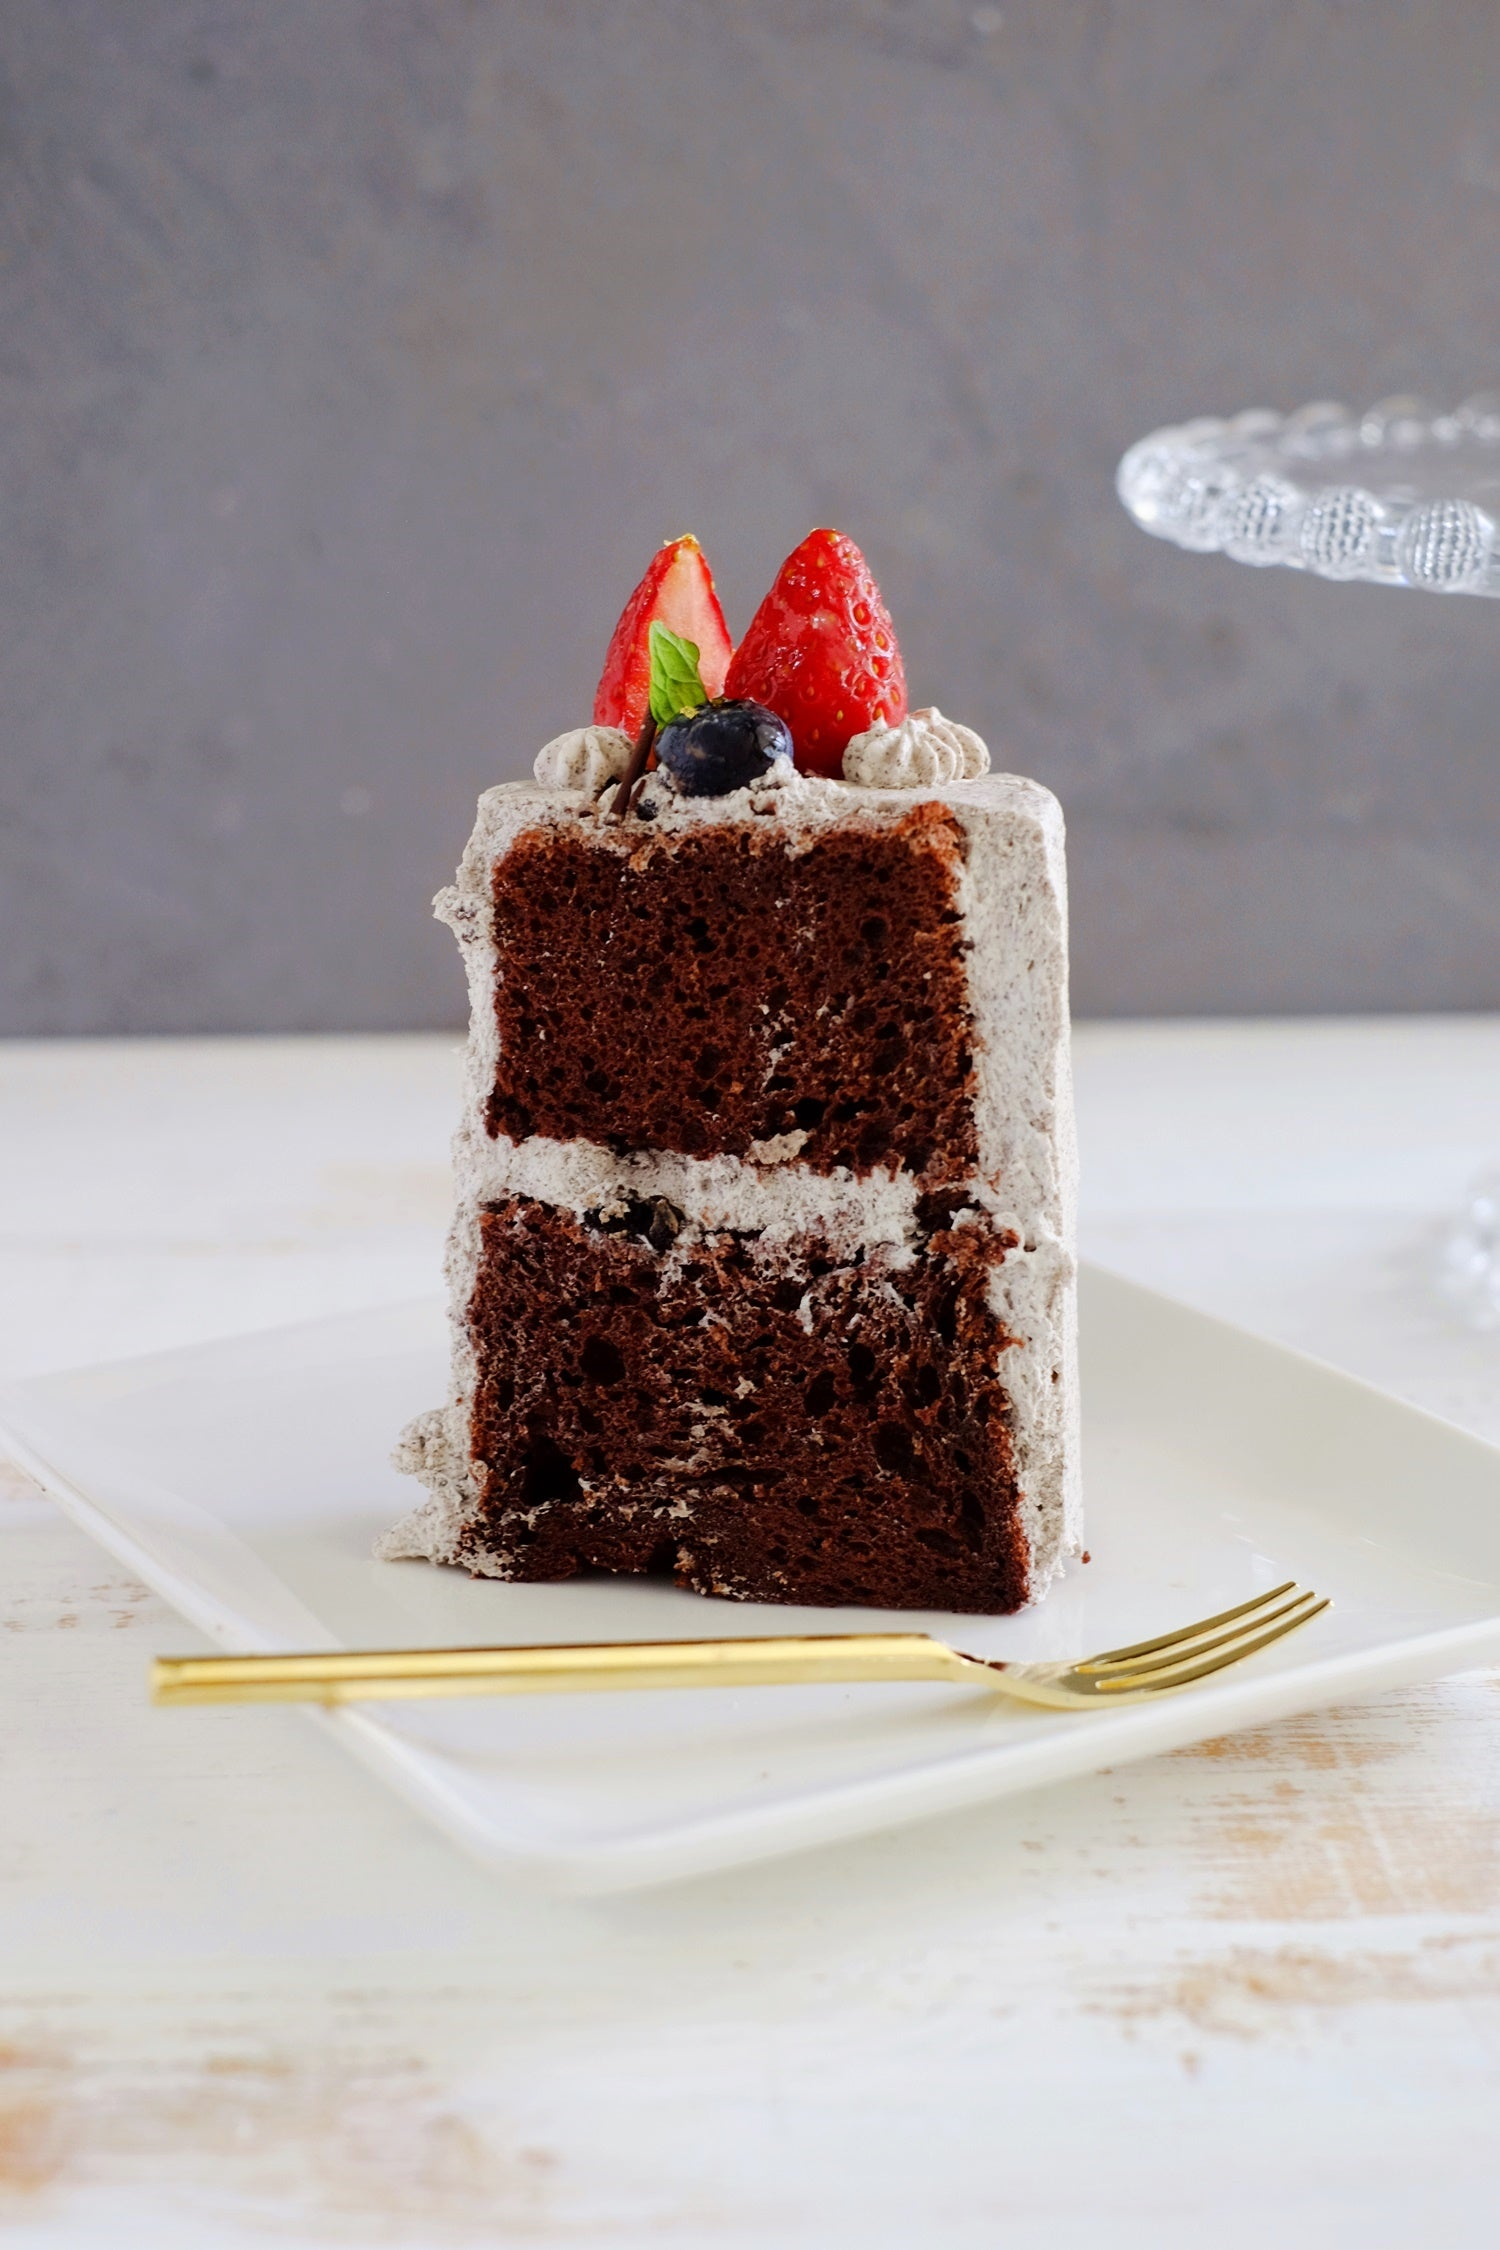 Slice of Oreo Chocolate Chiffon Cake